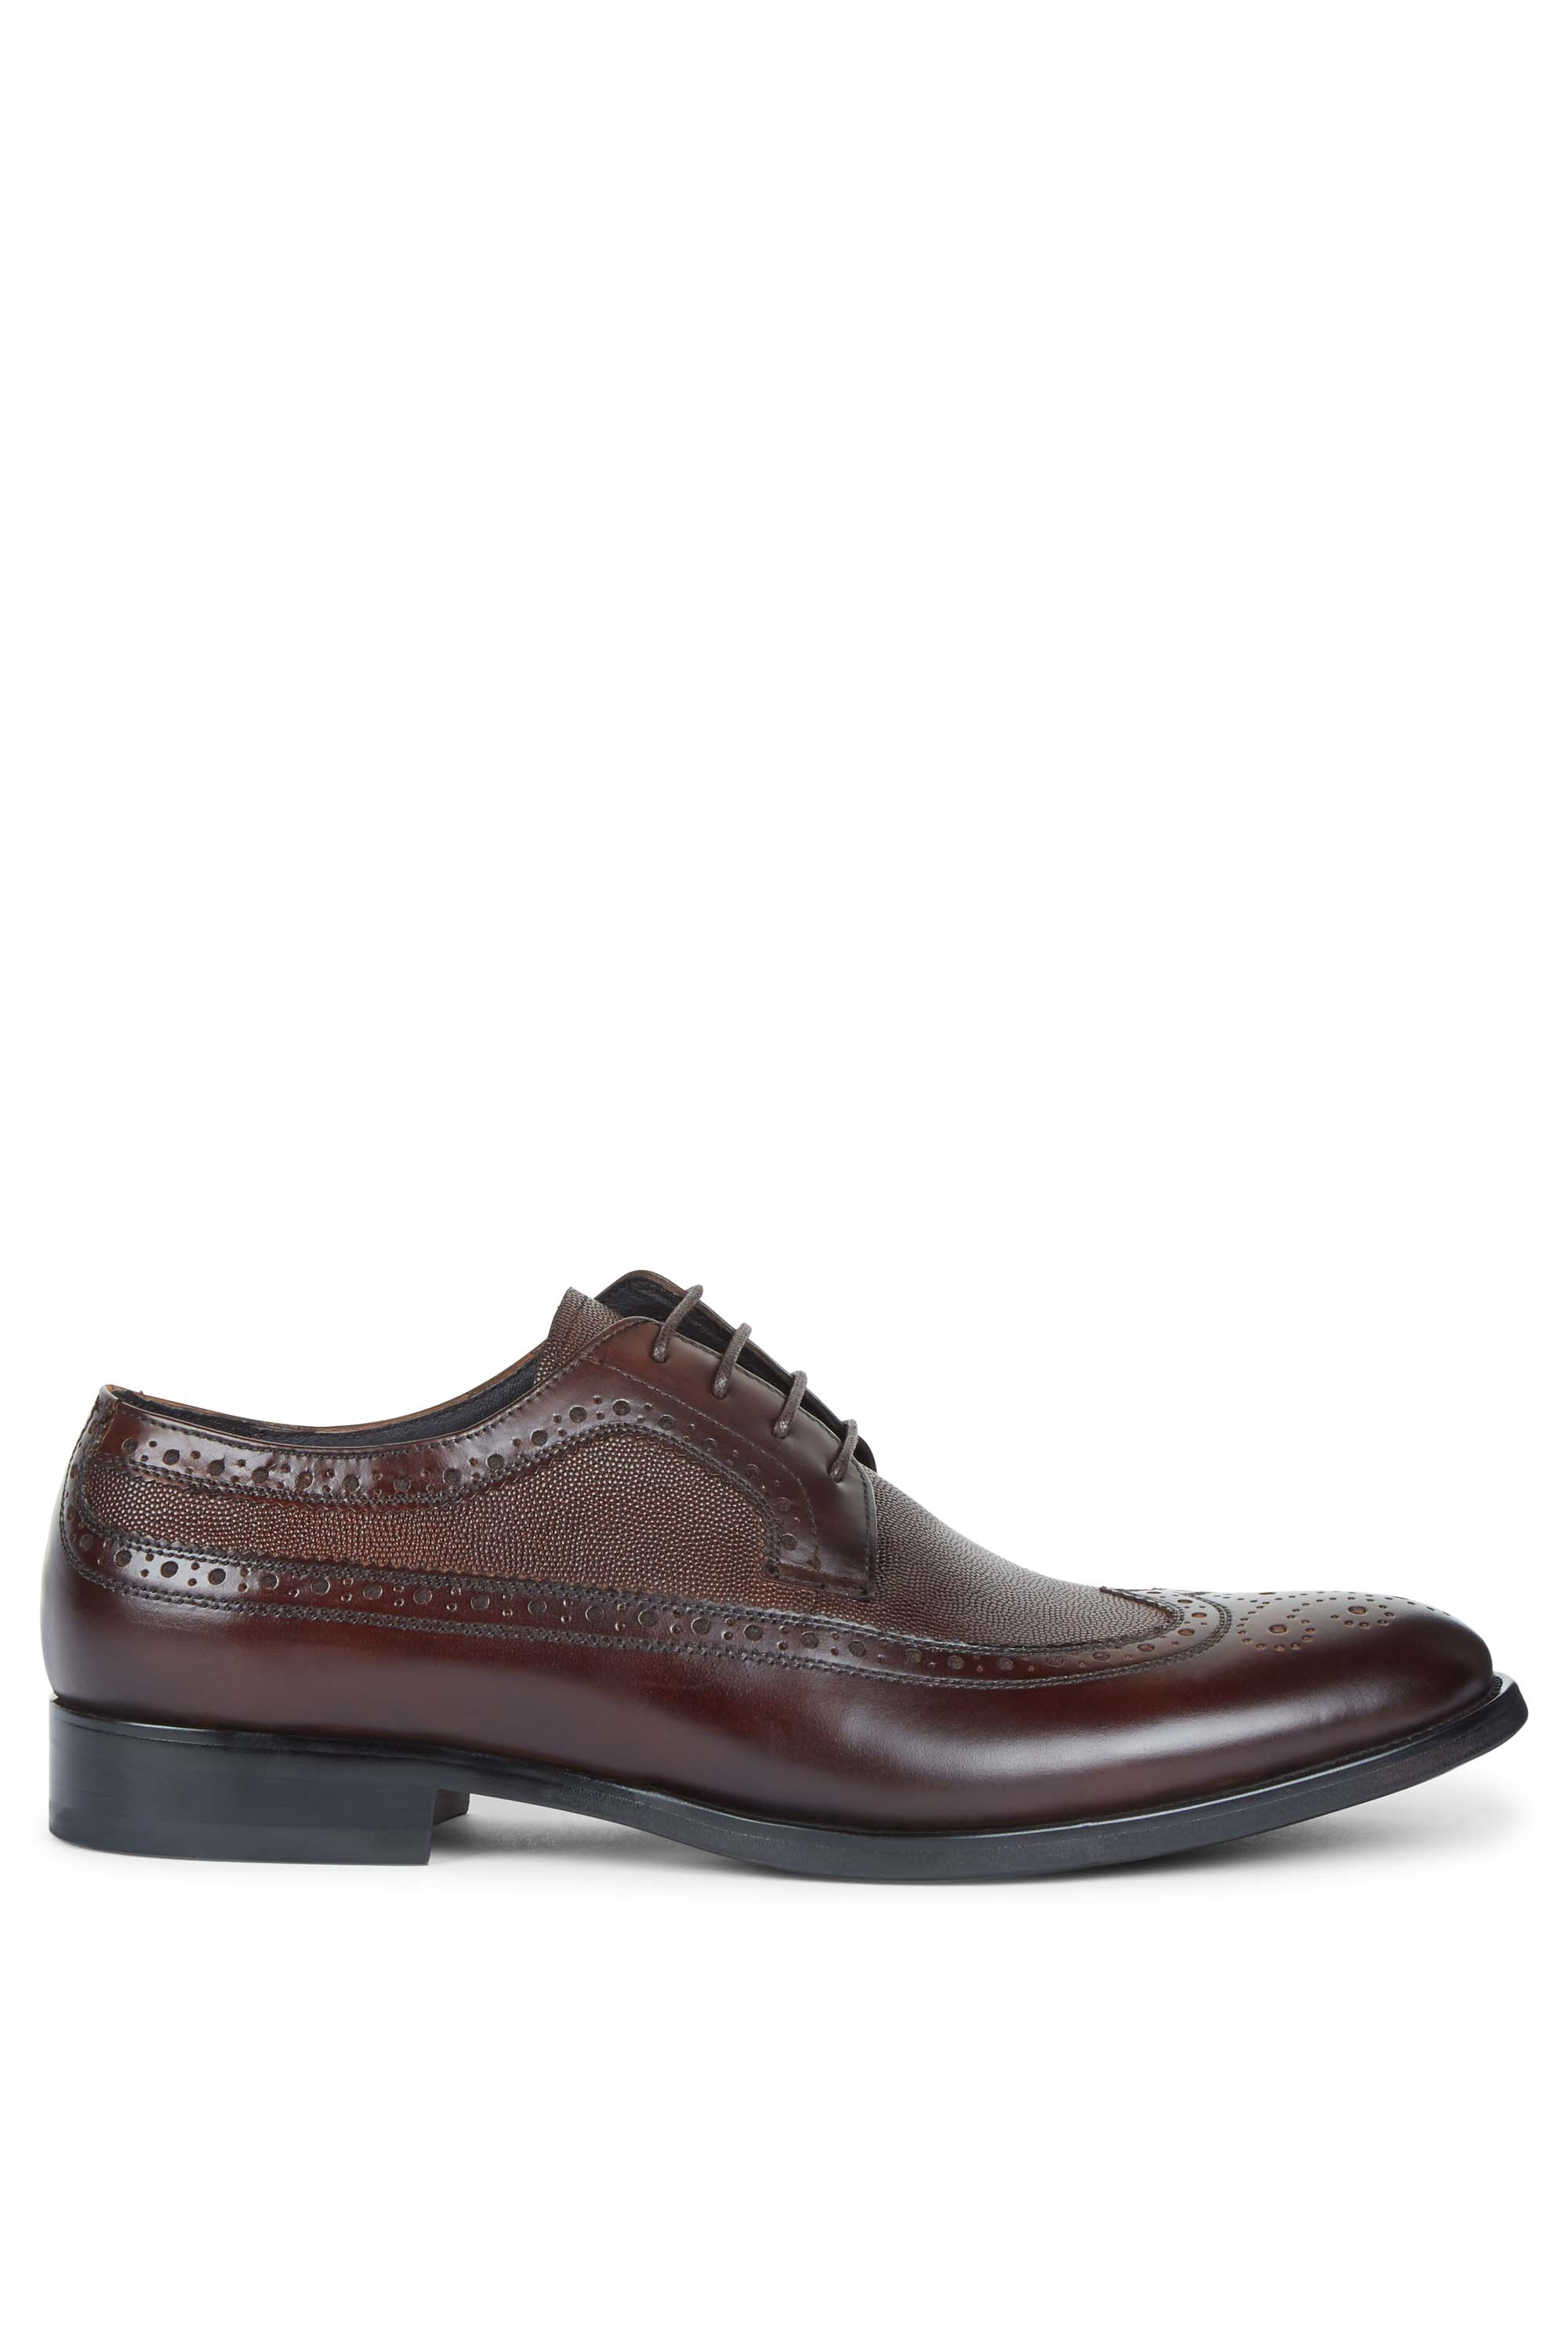 white mens shoes textured brown oxford